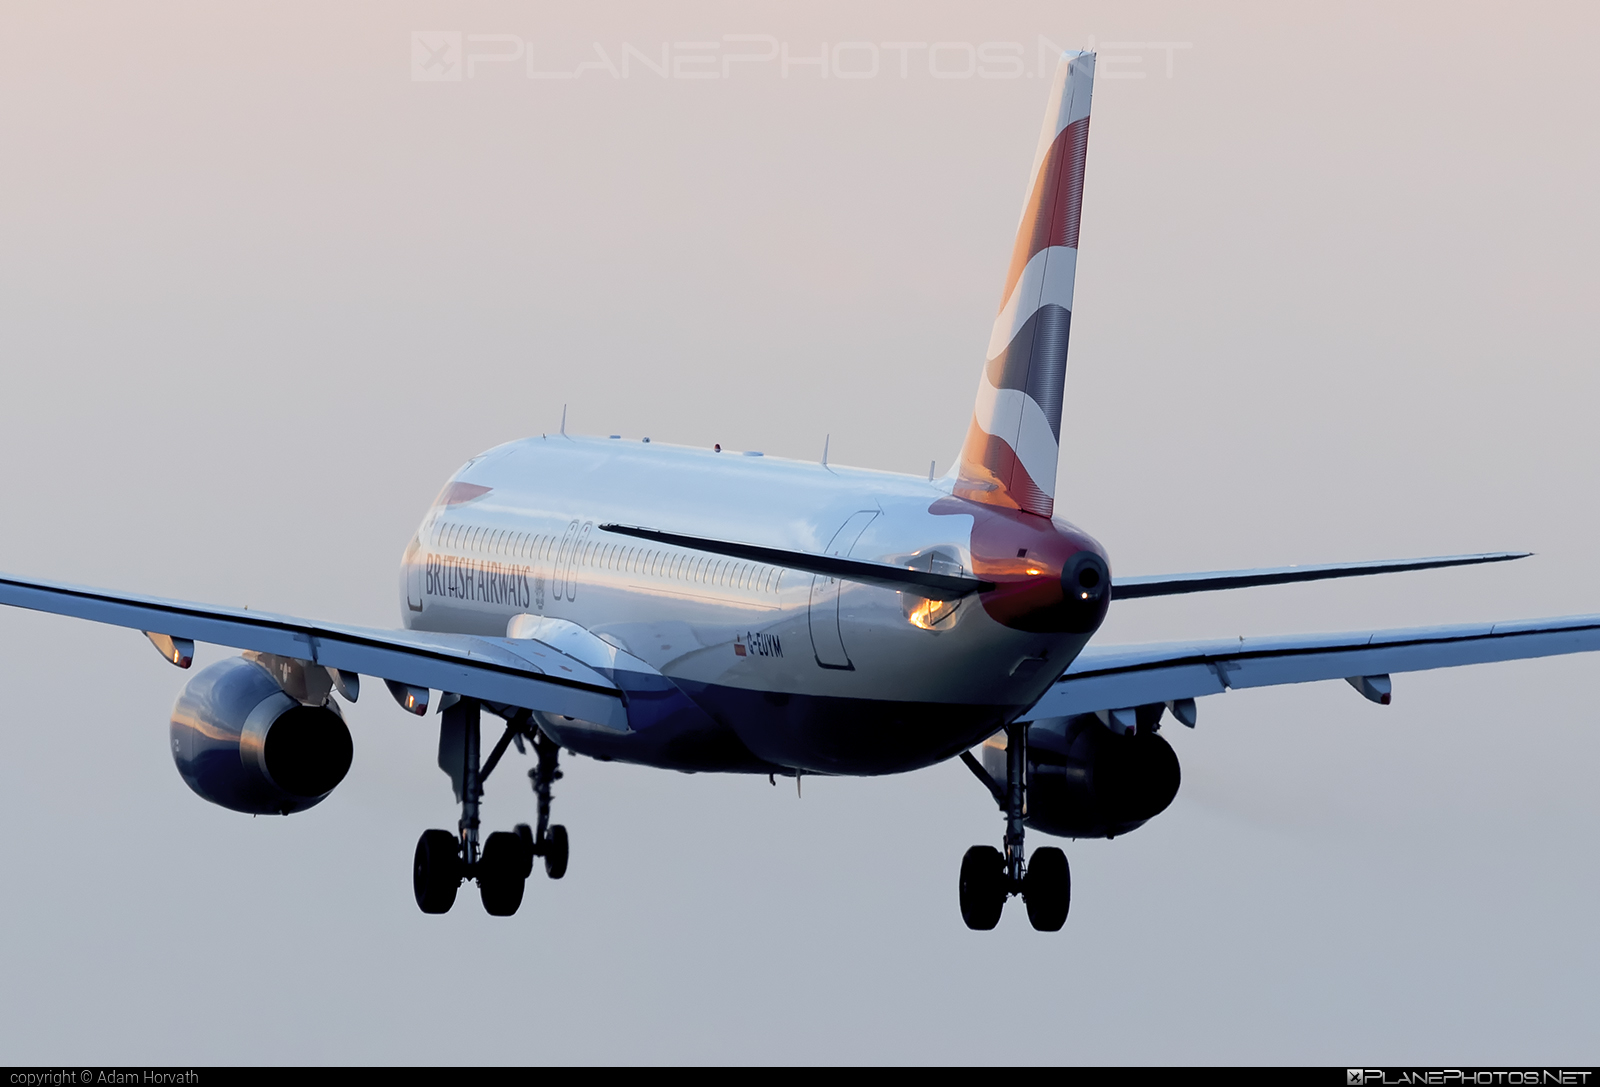 British Airways Airbus A320-232 - G-EUYM #a320 #a320family #airbus #airbus320 #britishairways